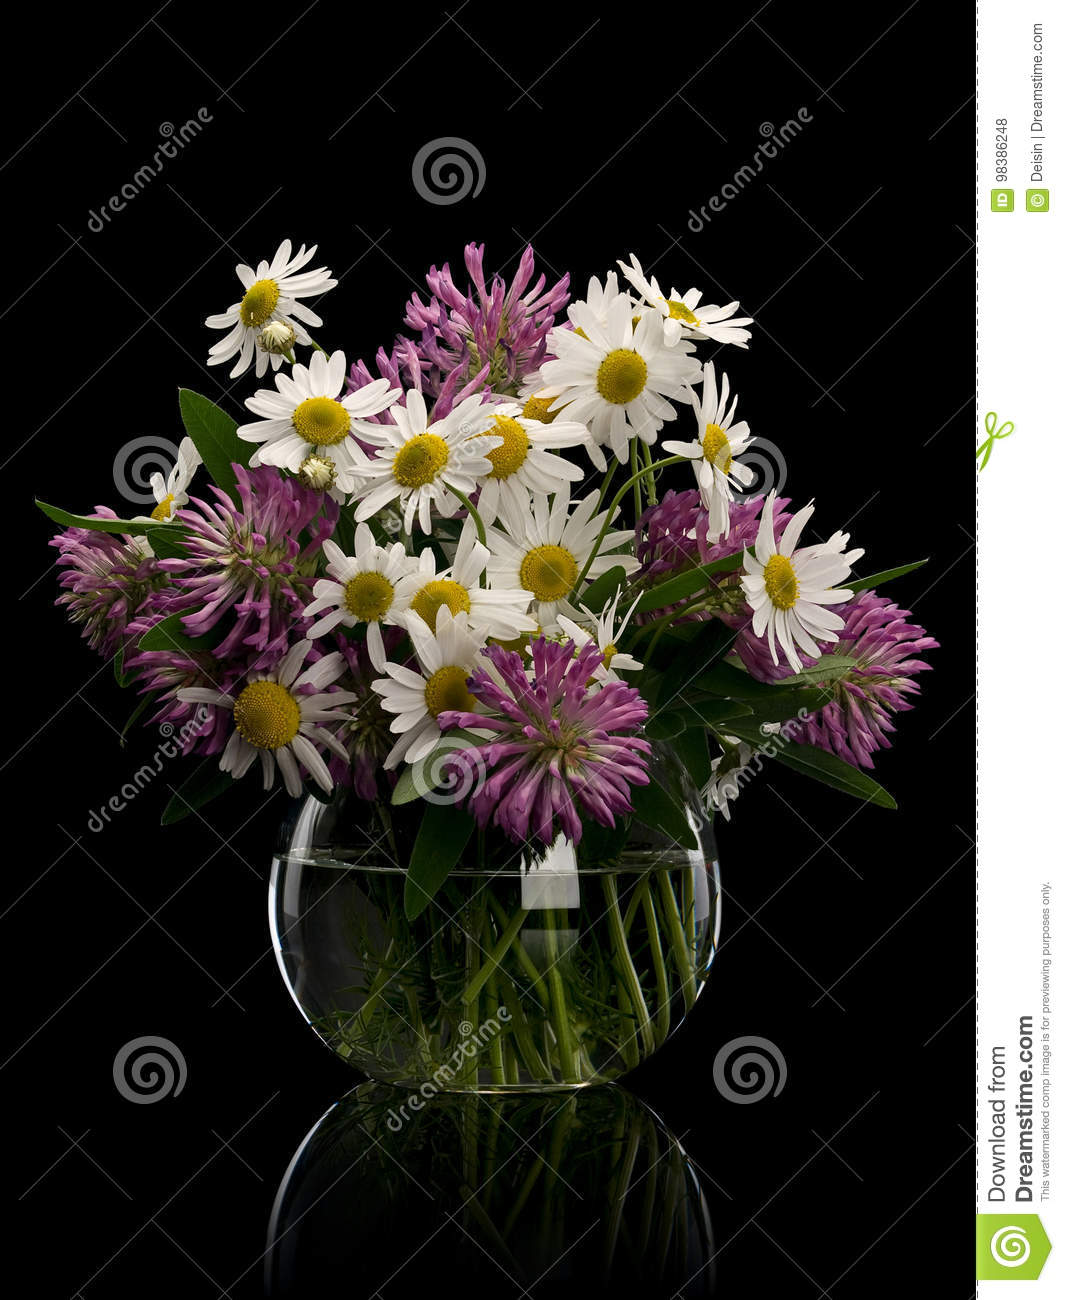 Flowers of clover and chamomile in glass vase stock photo image of download flowers of clover and chamomile in glass vase stock photo image of bouquet izmirmasajfo